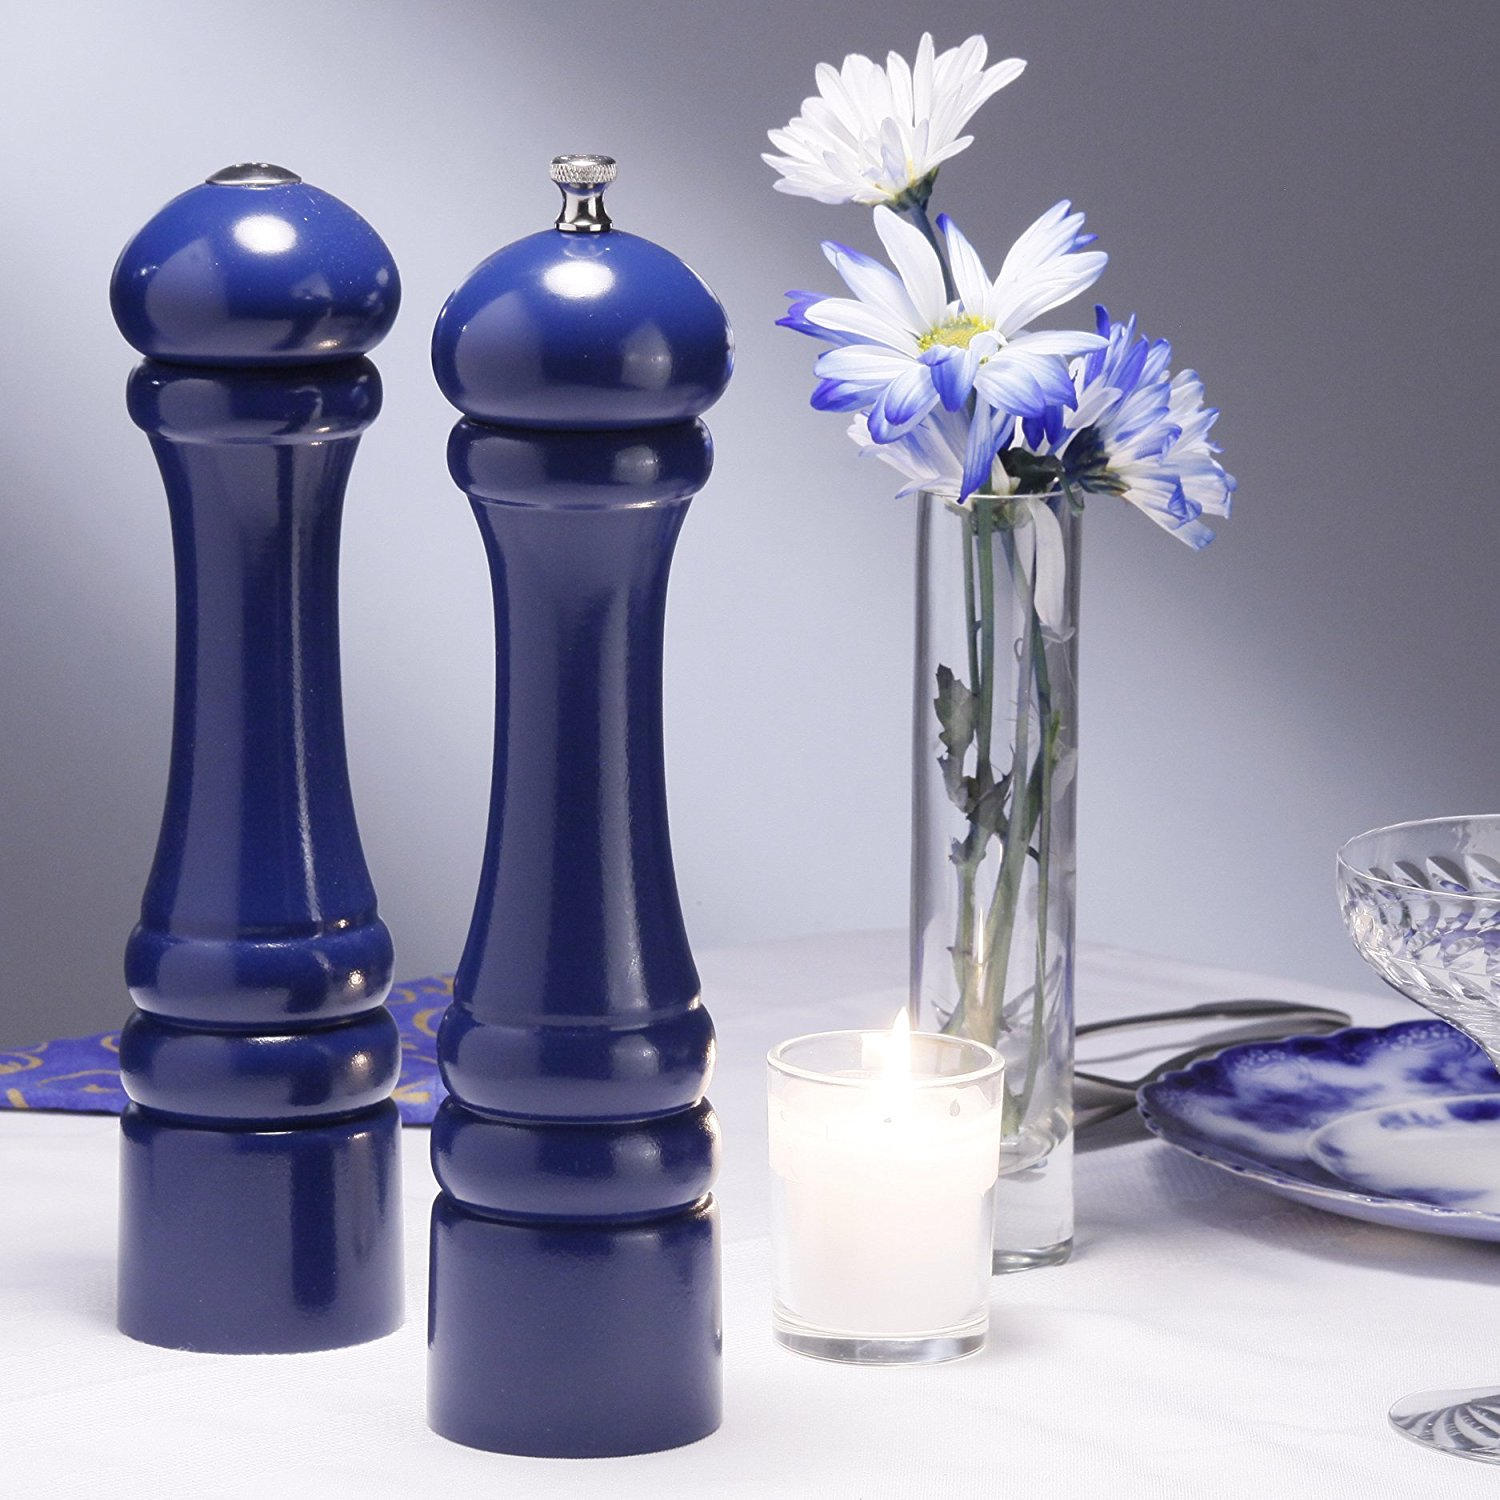 Chef Specialties 10 Inch Imperial Pepper Mill and Salt Shaker Set Cobalt Blue by Chef Specialties